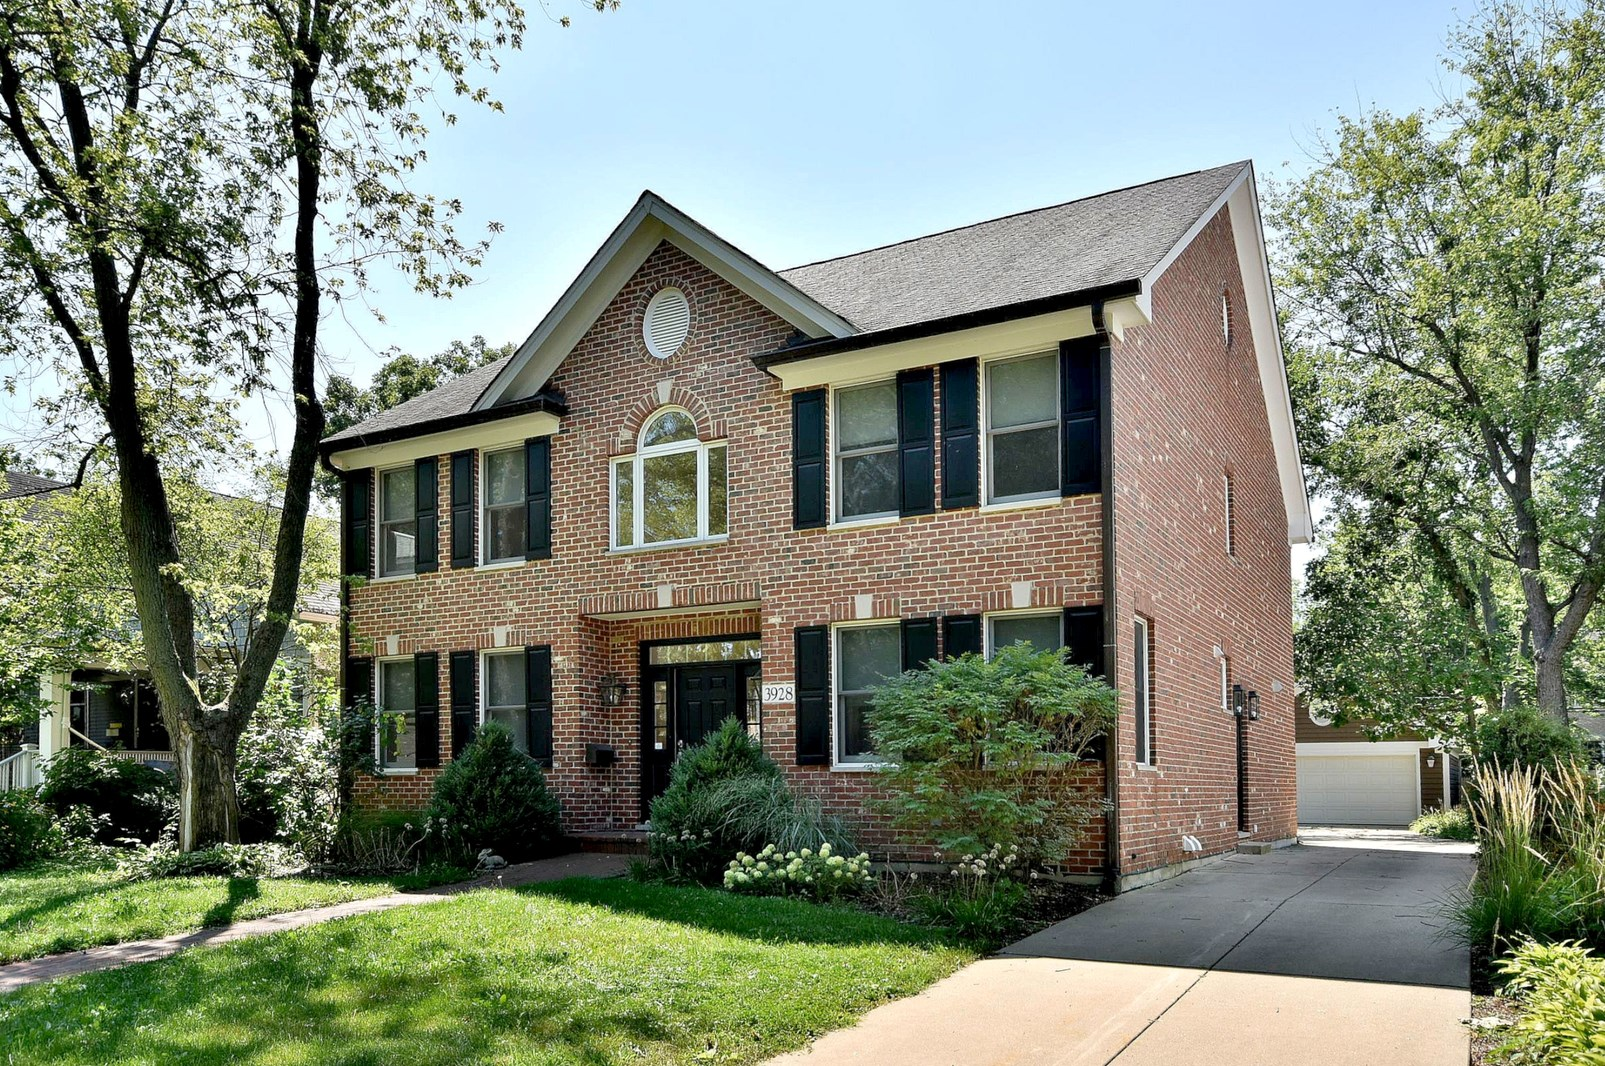 3928 Central Ave, Western Springs, IL 60558